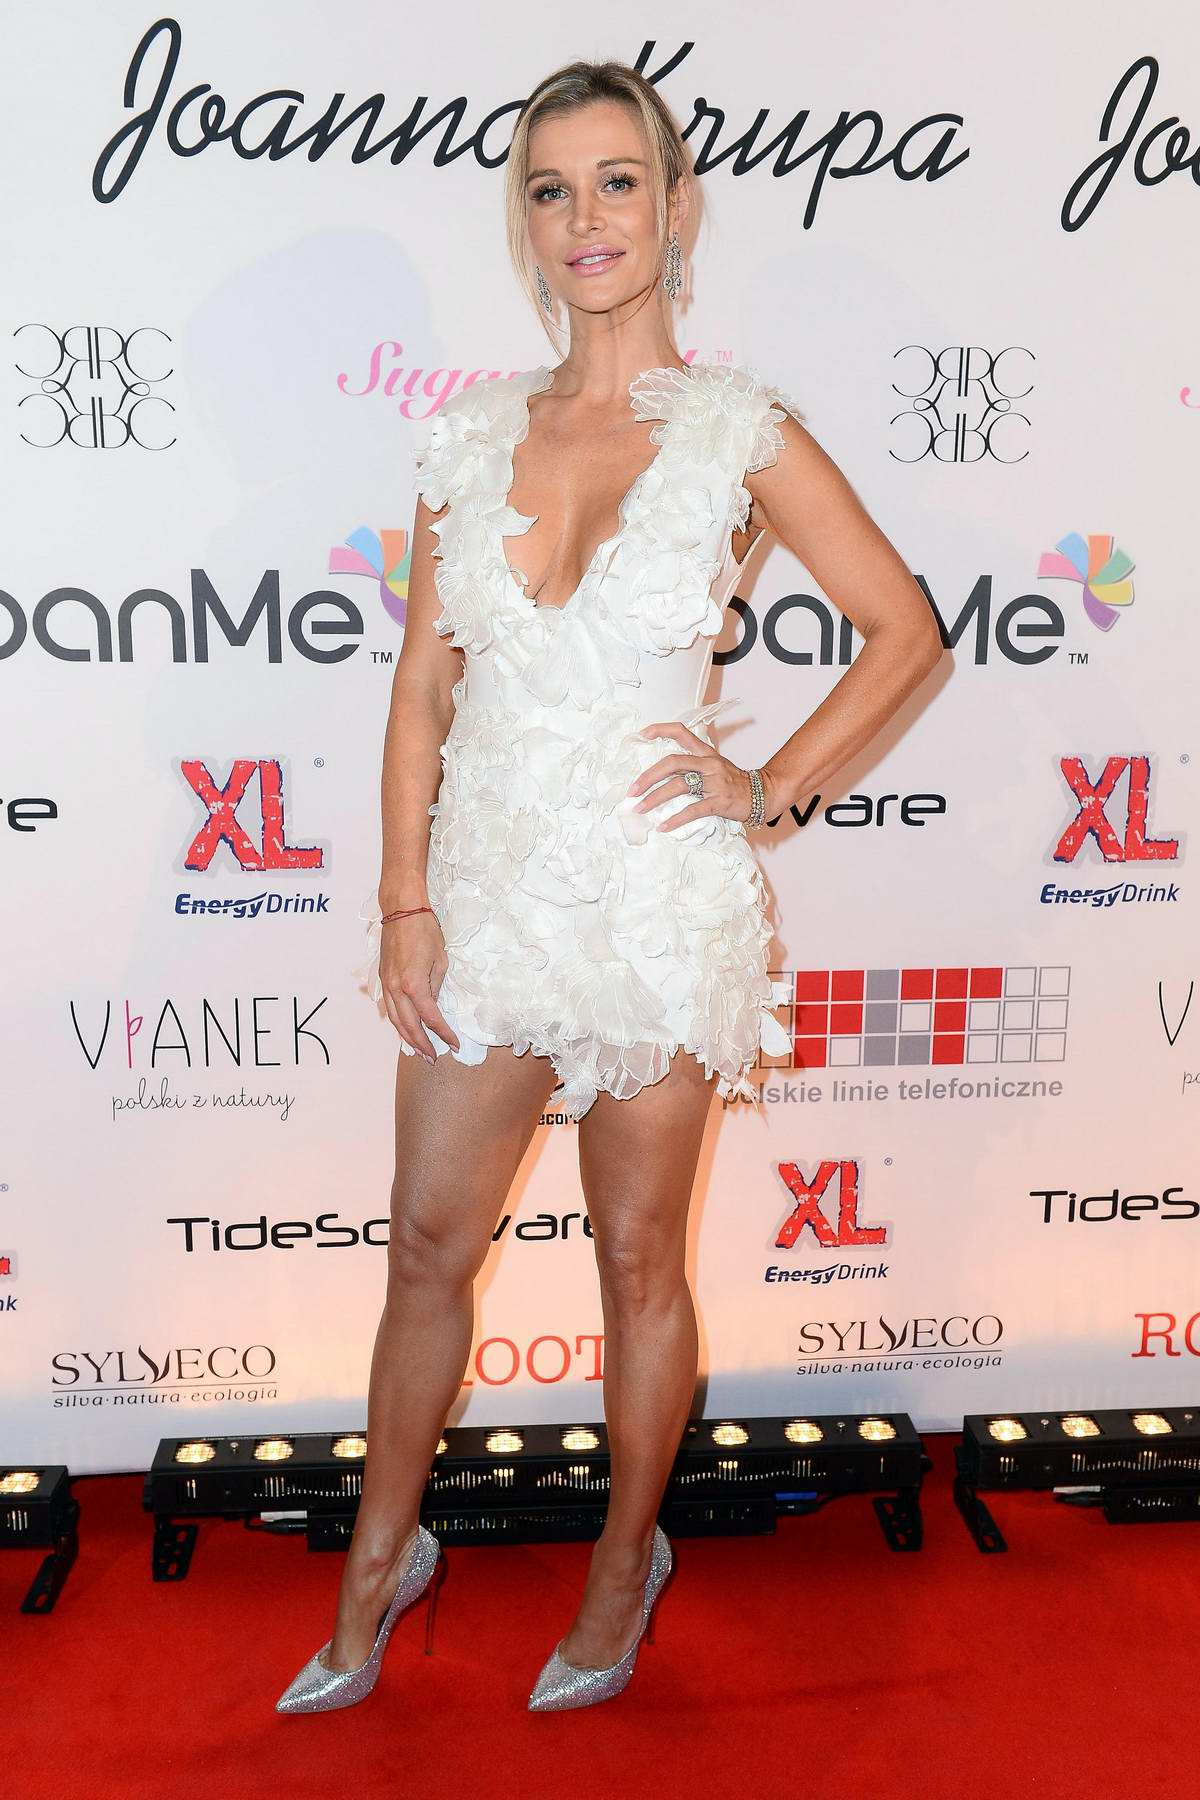 Joanna Krupa attends the Animals Rights Gala in Warsaw, Poland